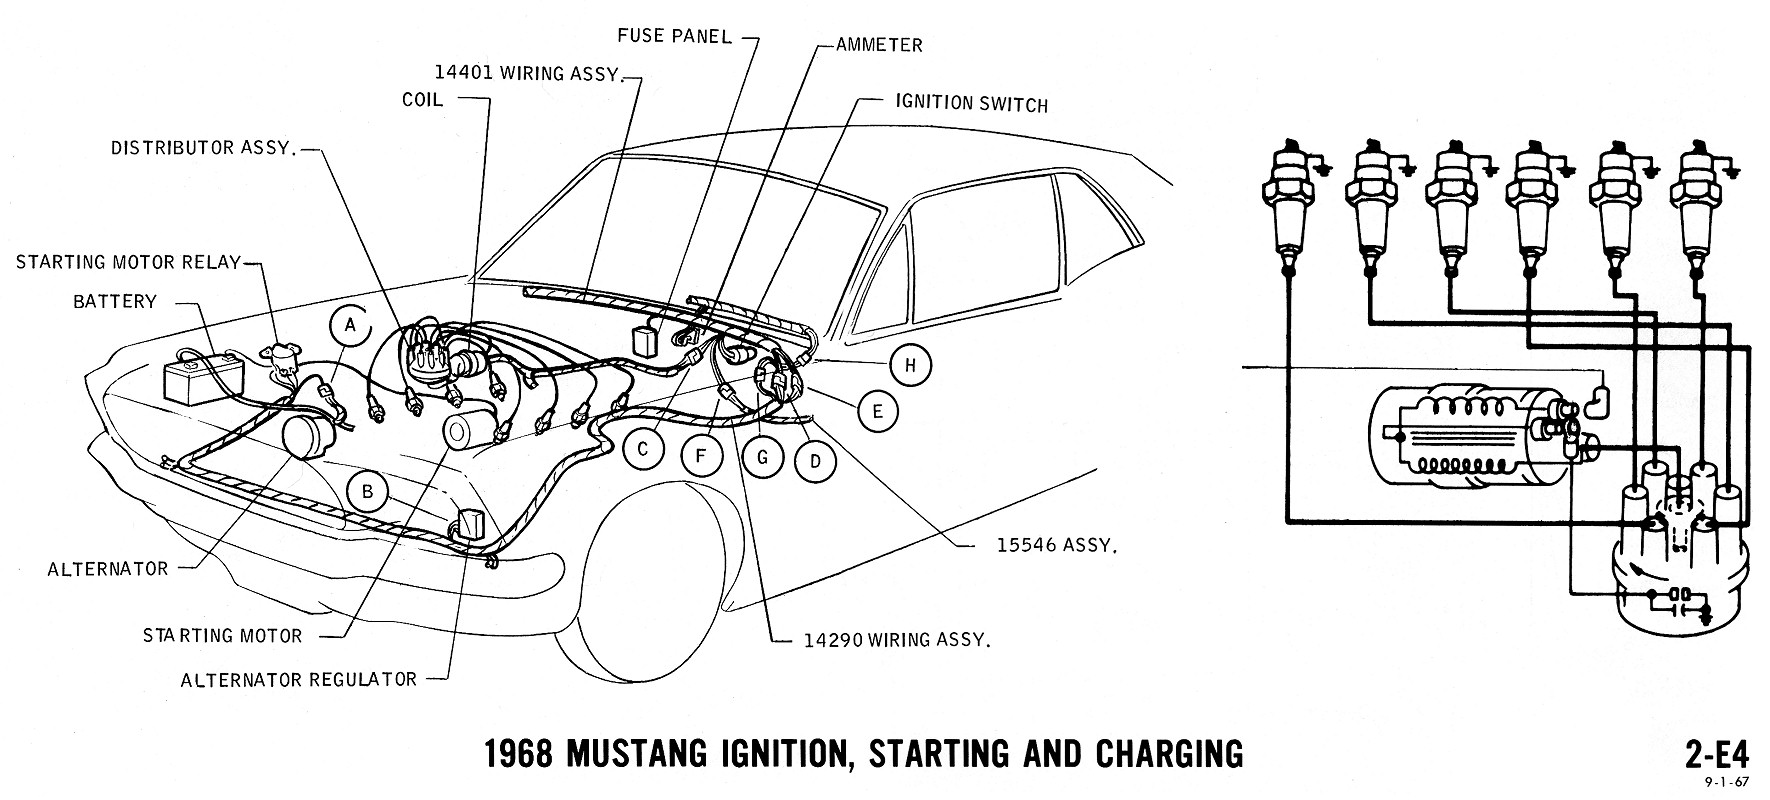 hight resolution of 94 mustang wiring schematic wiring diagram database67 mustang ammeter wiring diagram 20